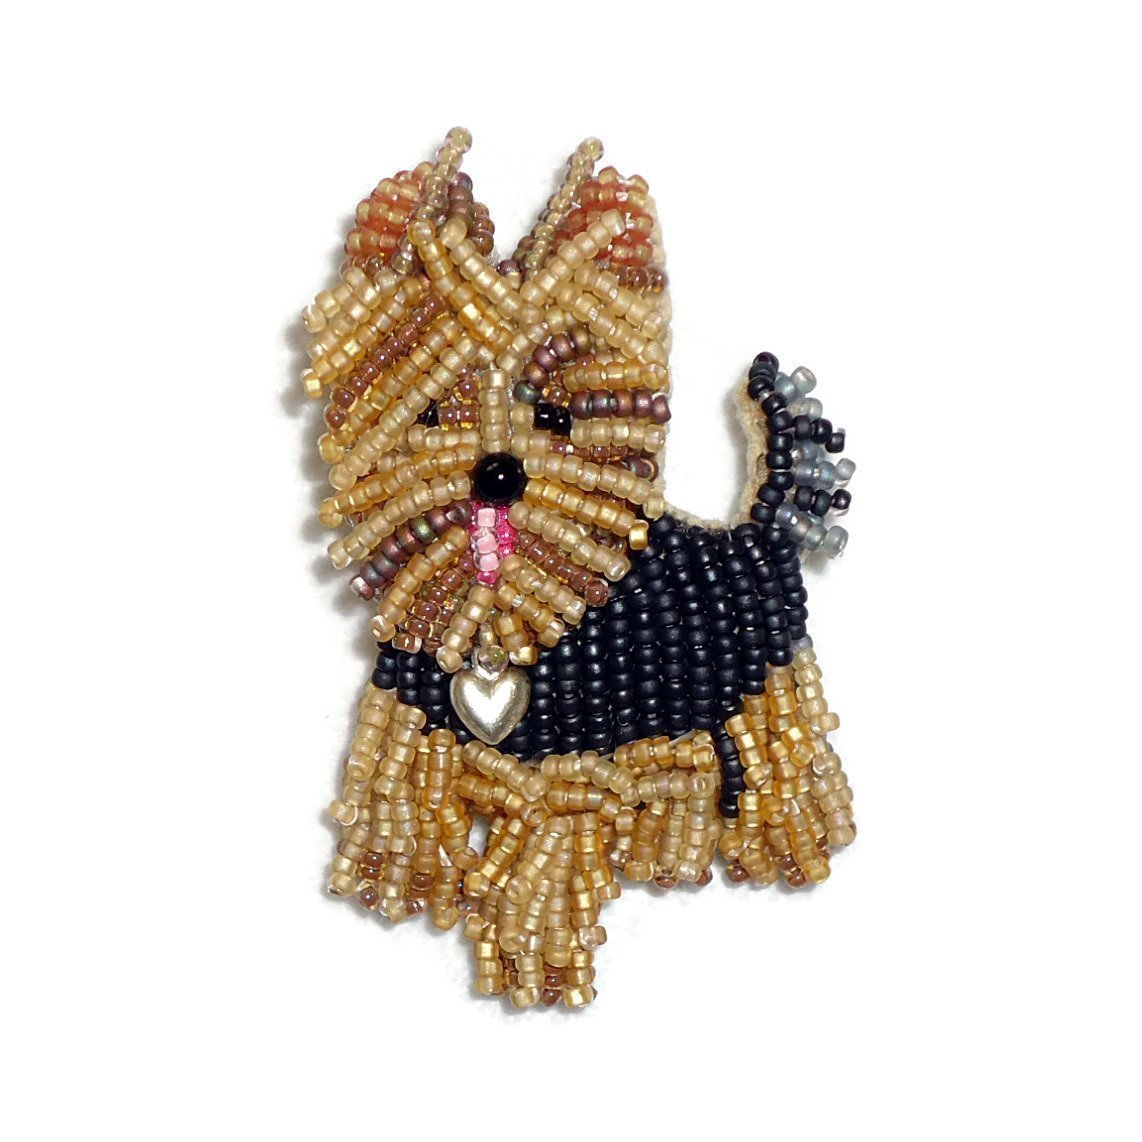 YORKIE LOVE beaded Yorkshire Terrier dog pin pendant necklace (Made to Order)